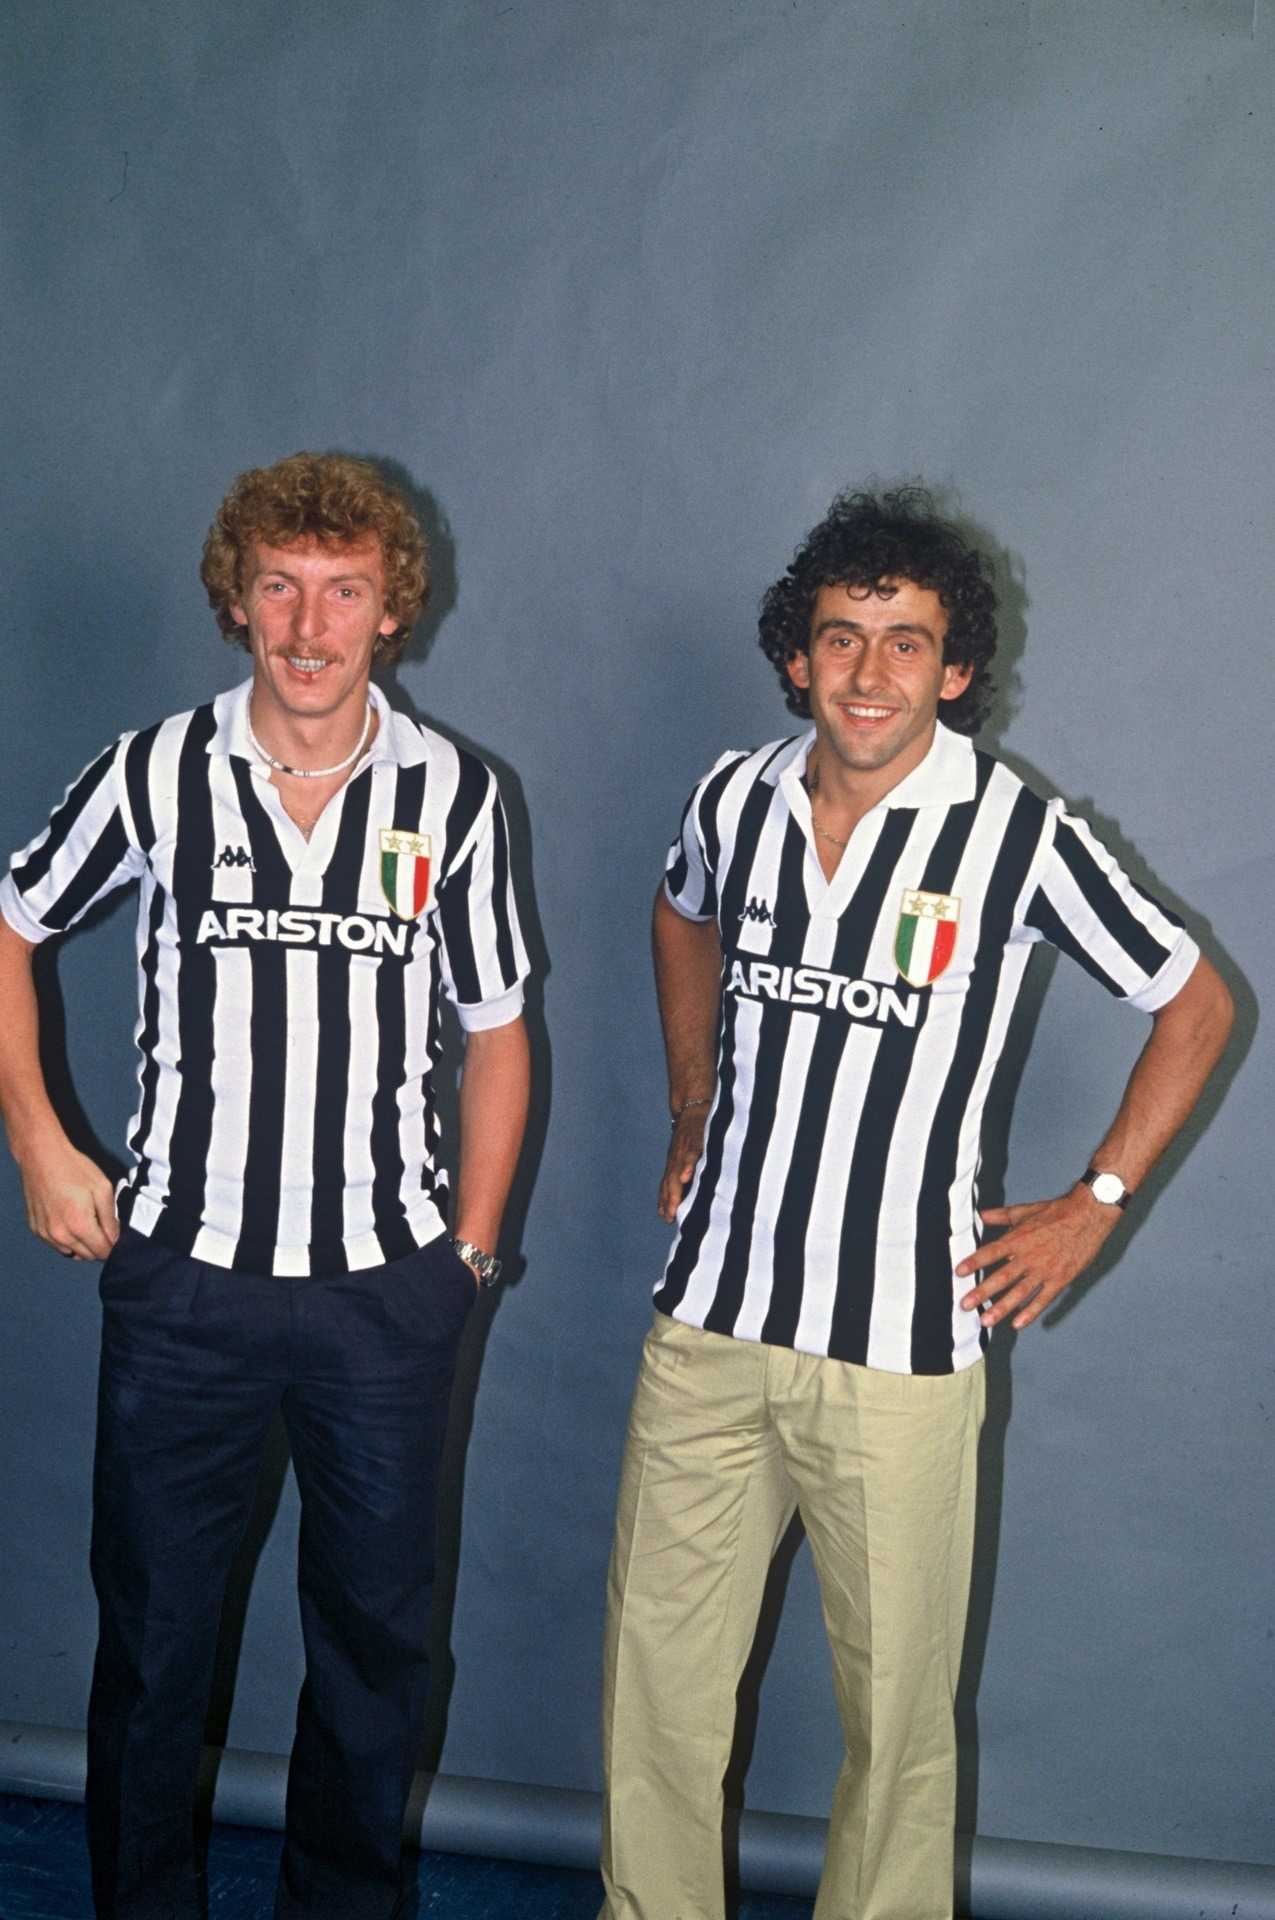 Boniek and Platini on their arrival at Juve, 1982.